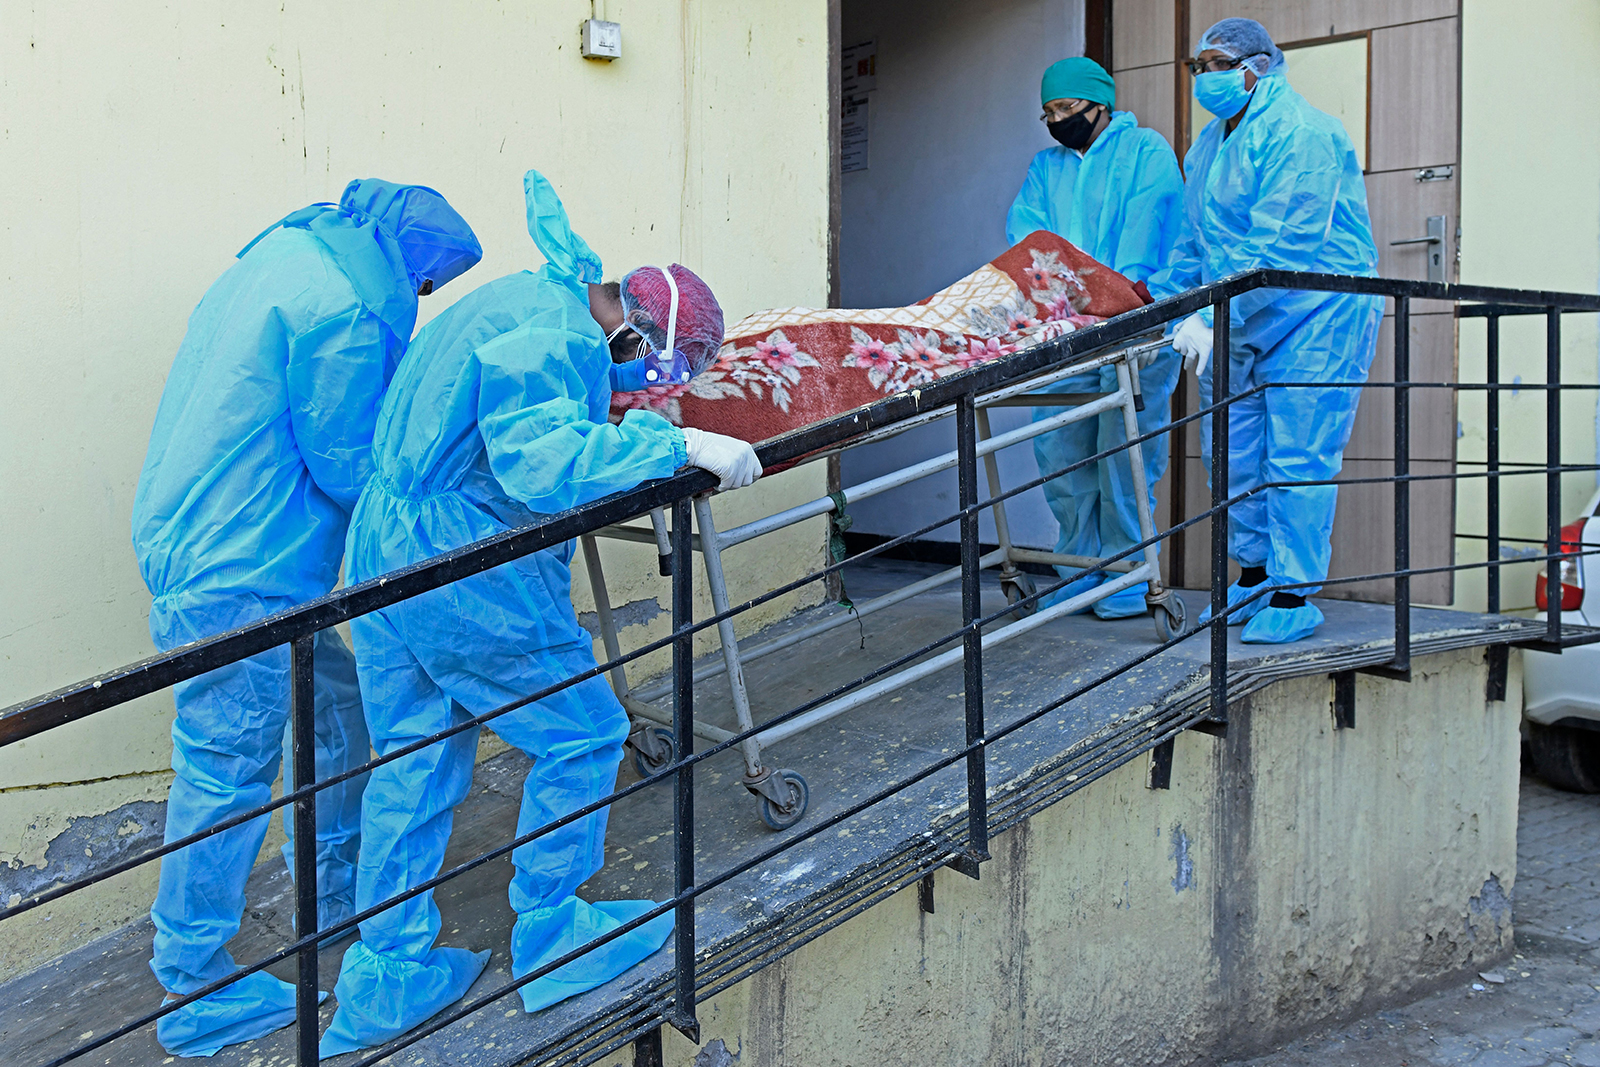 Members of medical staff wearing protective gear carry the dead body of a Covid-19 victim at a hospital in Amritsar, India on April 24.